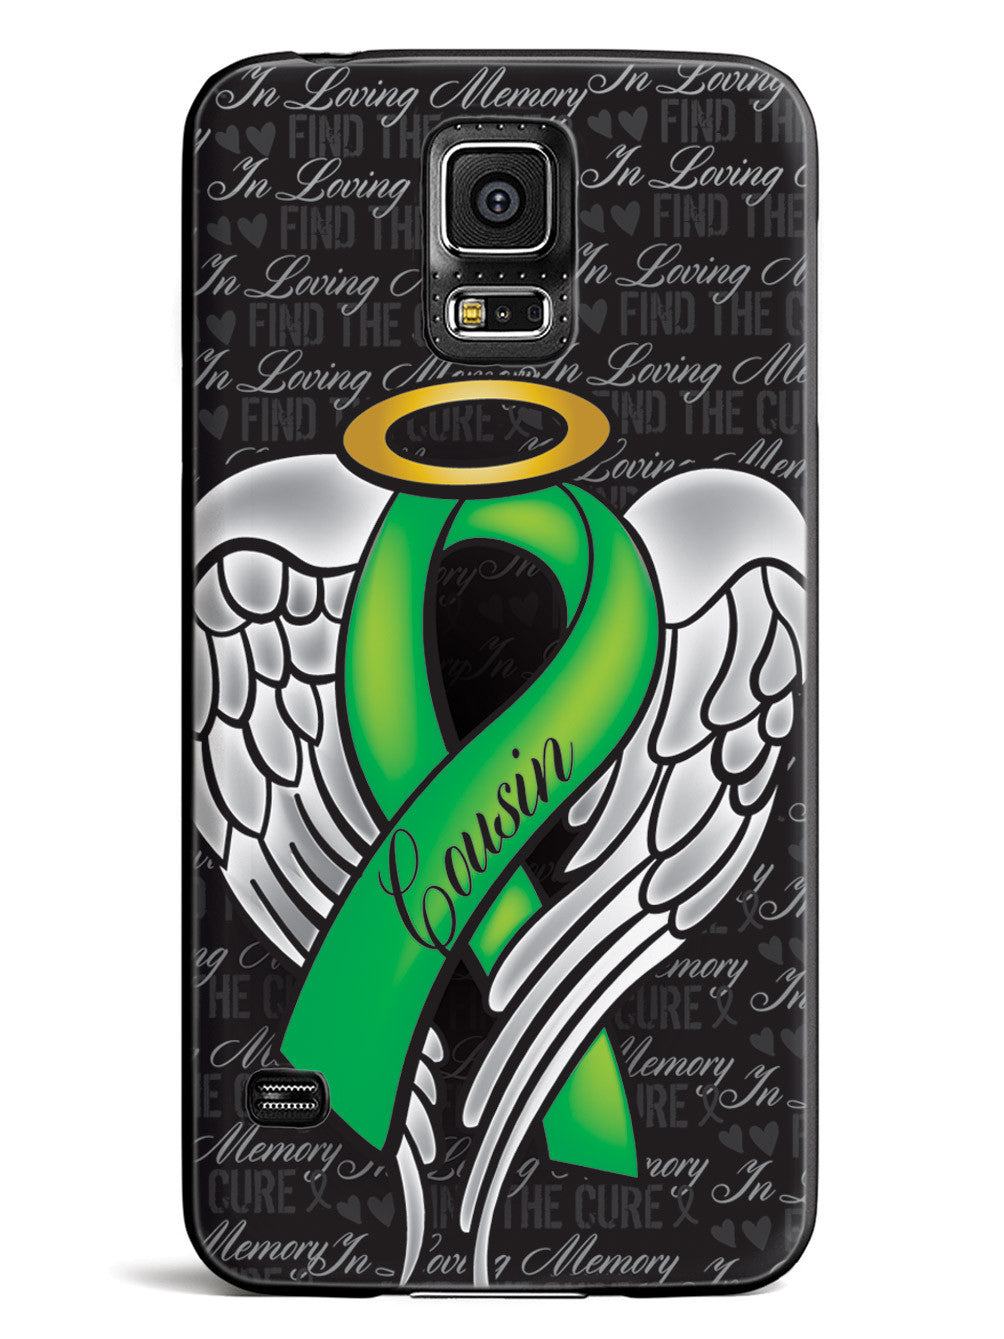 In Loving Memory of My Cousin - Green Ribbon Case